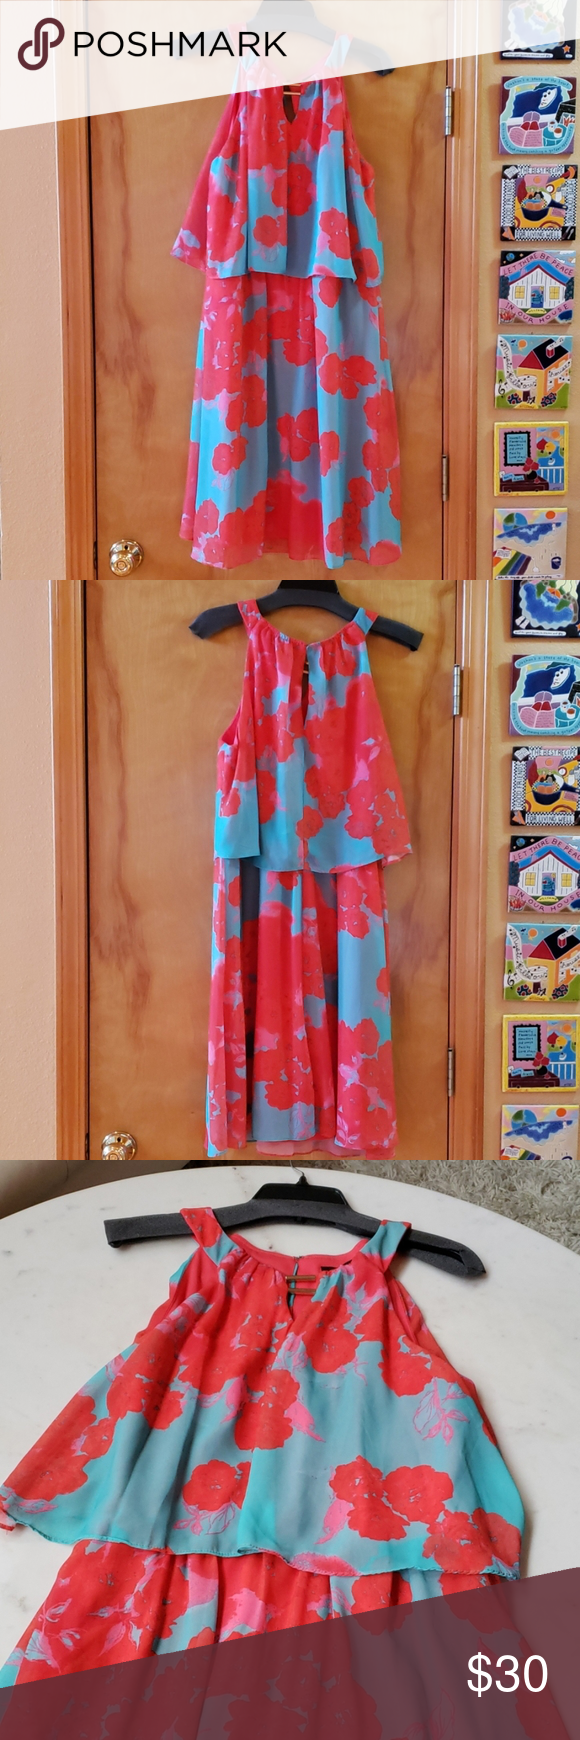 Sangria 2 Layer Sleeveless Summer Dress Size 12 In 2020 Sleeveless Dress Summer Summer Dresses Sangria Dress [ 1740 x 580 Pixel ]